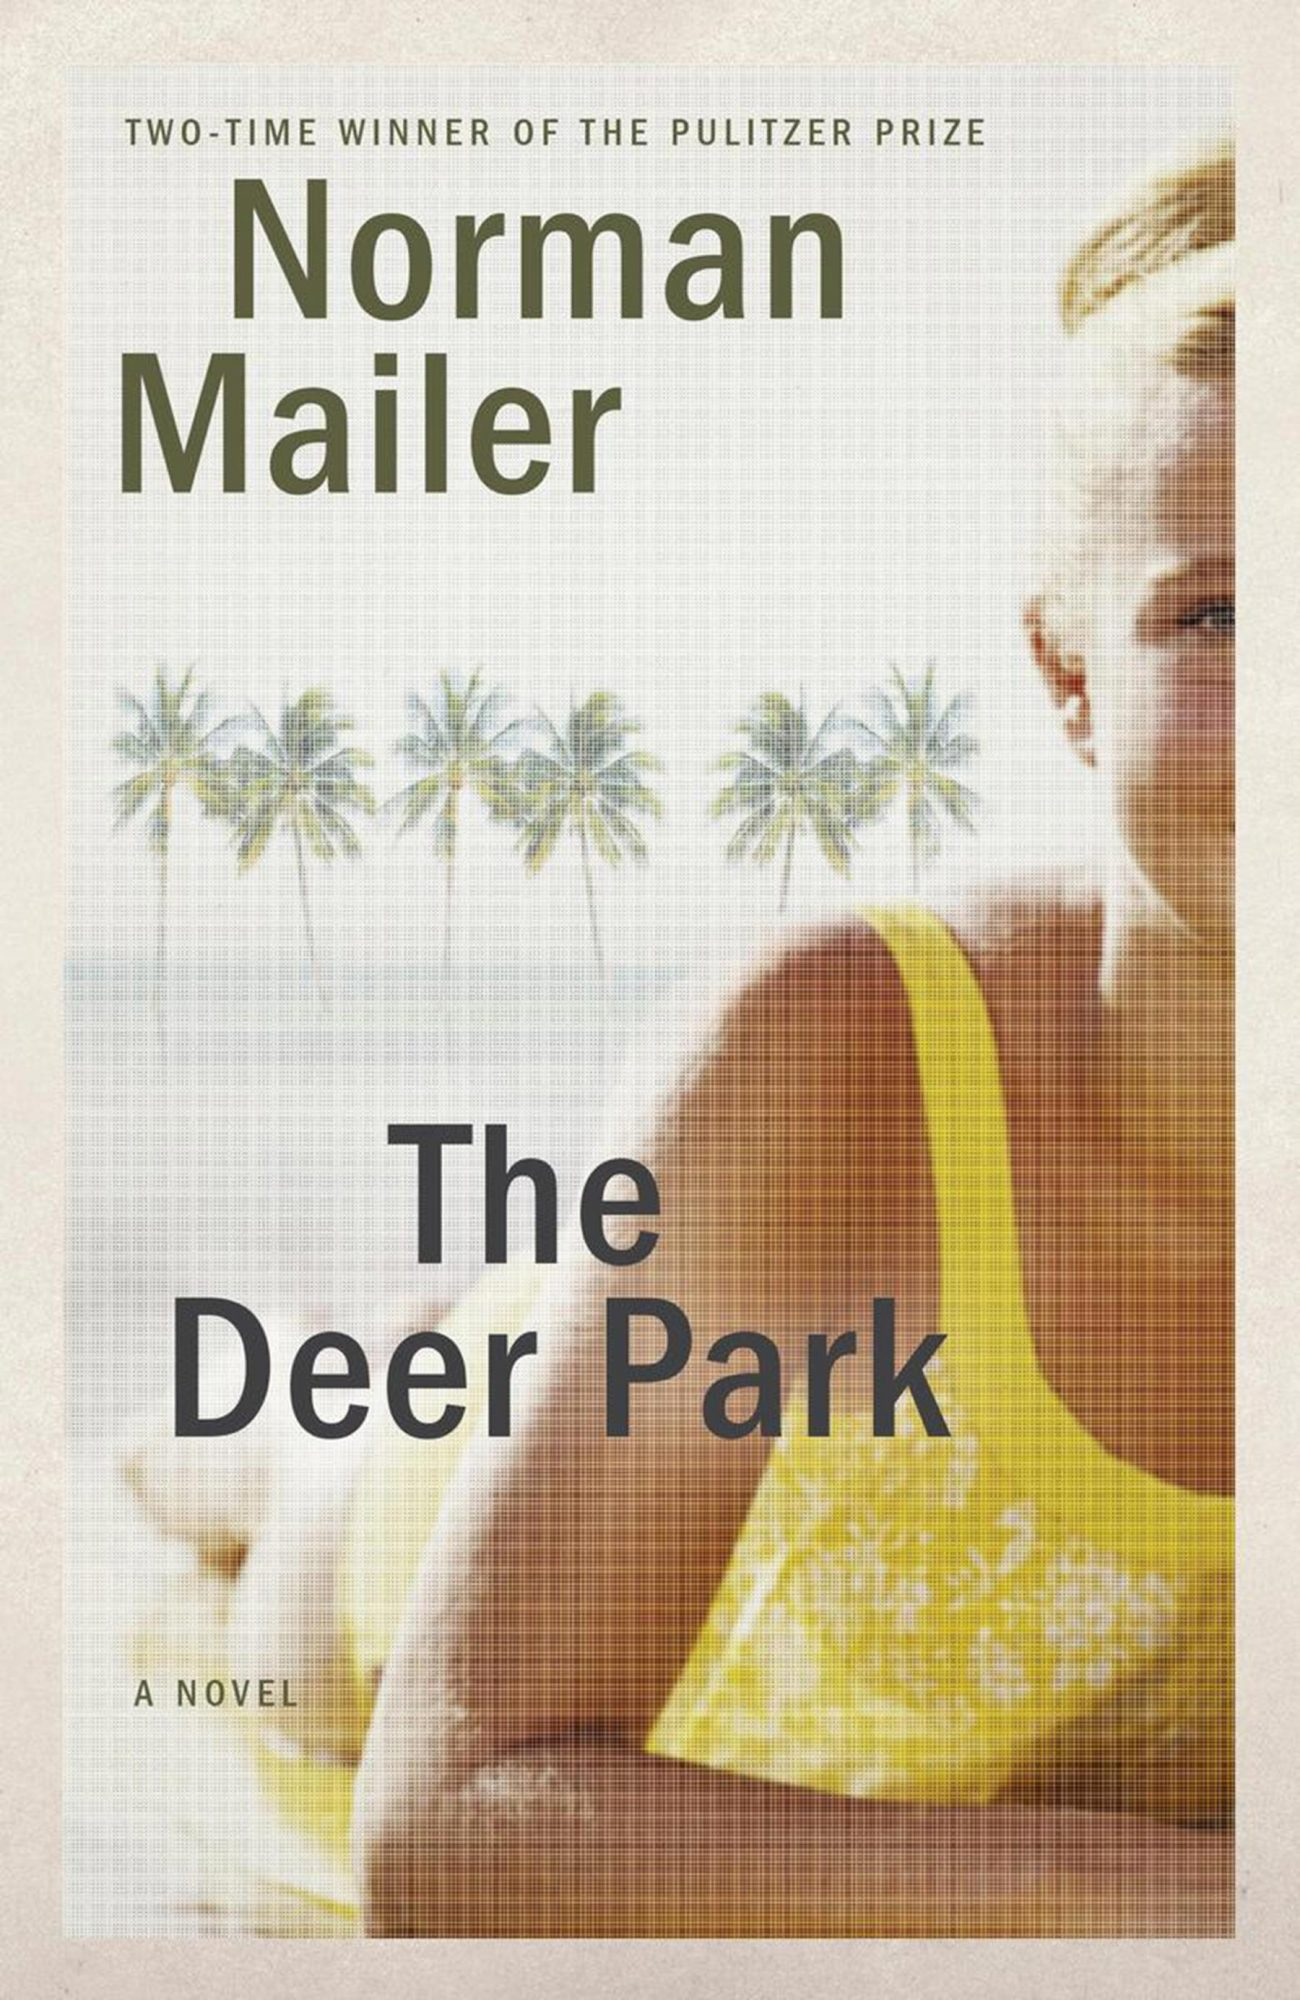 The Deer Park, by Norman Mailer